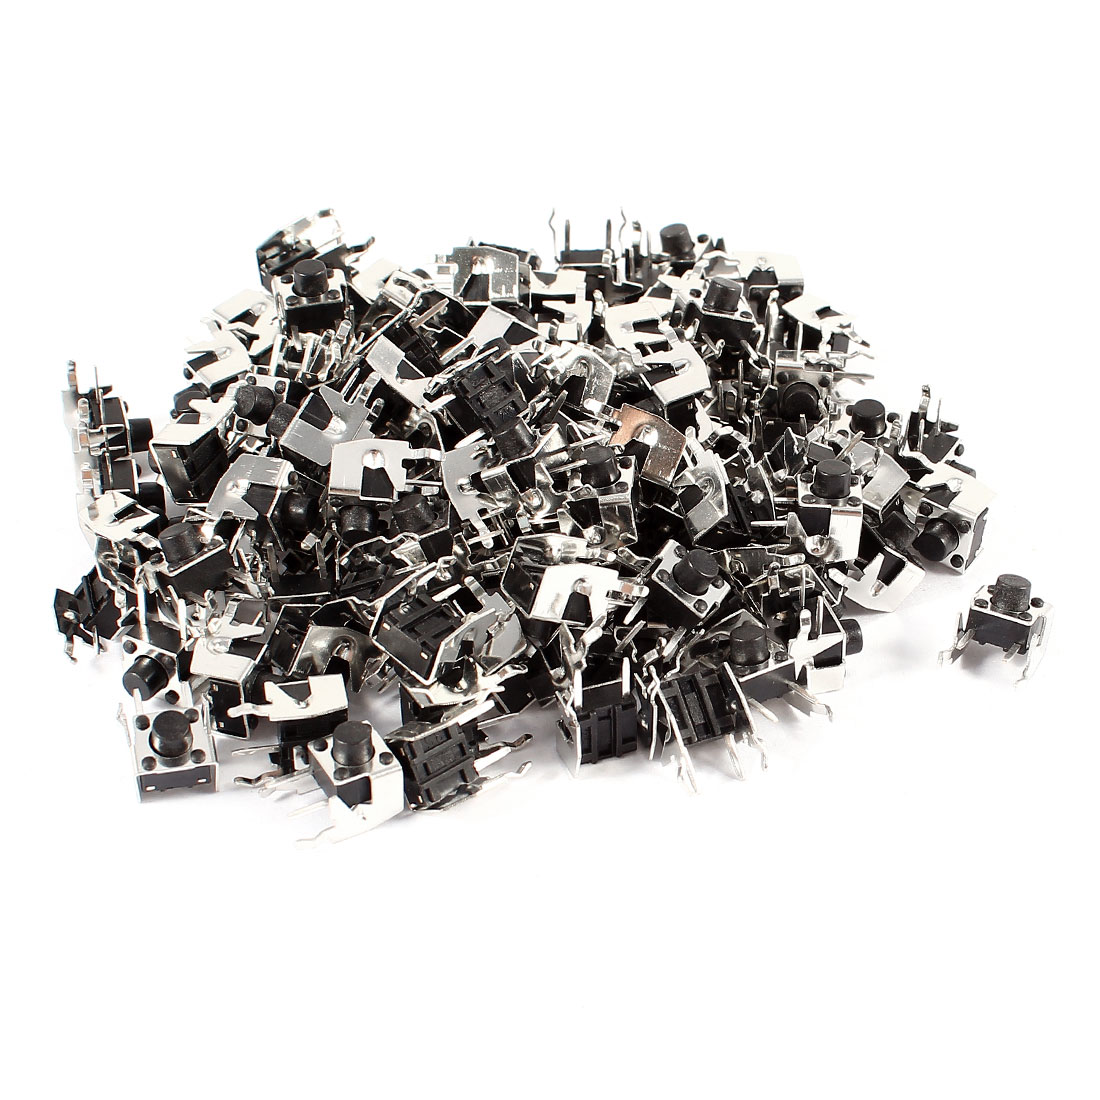 100 Pcs 6x6x6mm PCB Mount Tactile Tact Push Button Micro Momentary Switch DC 50V 1.2A